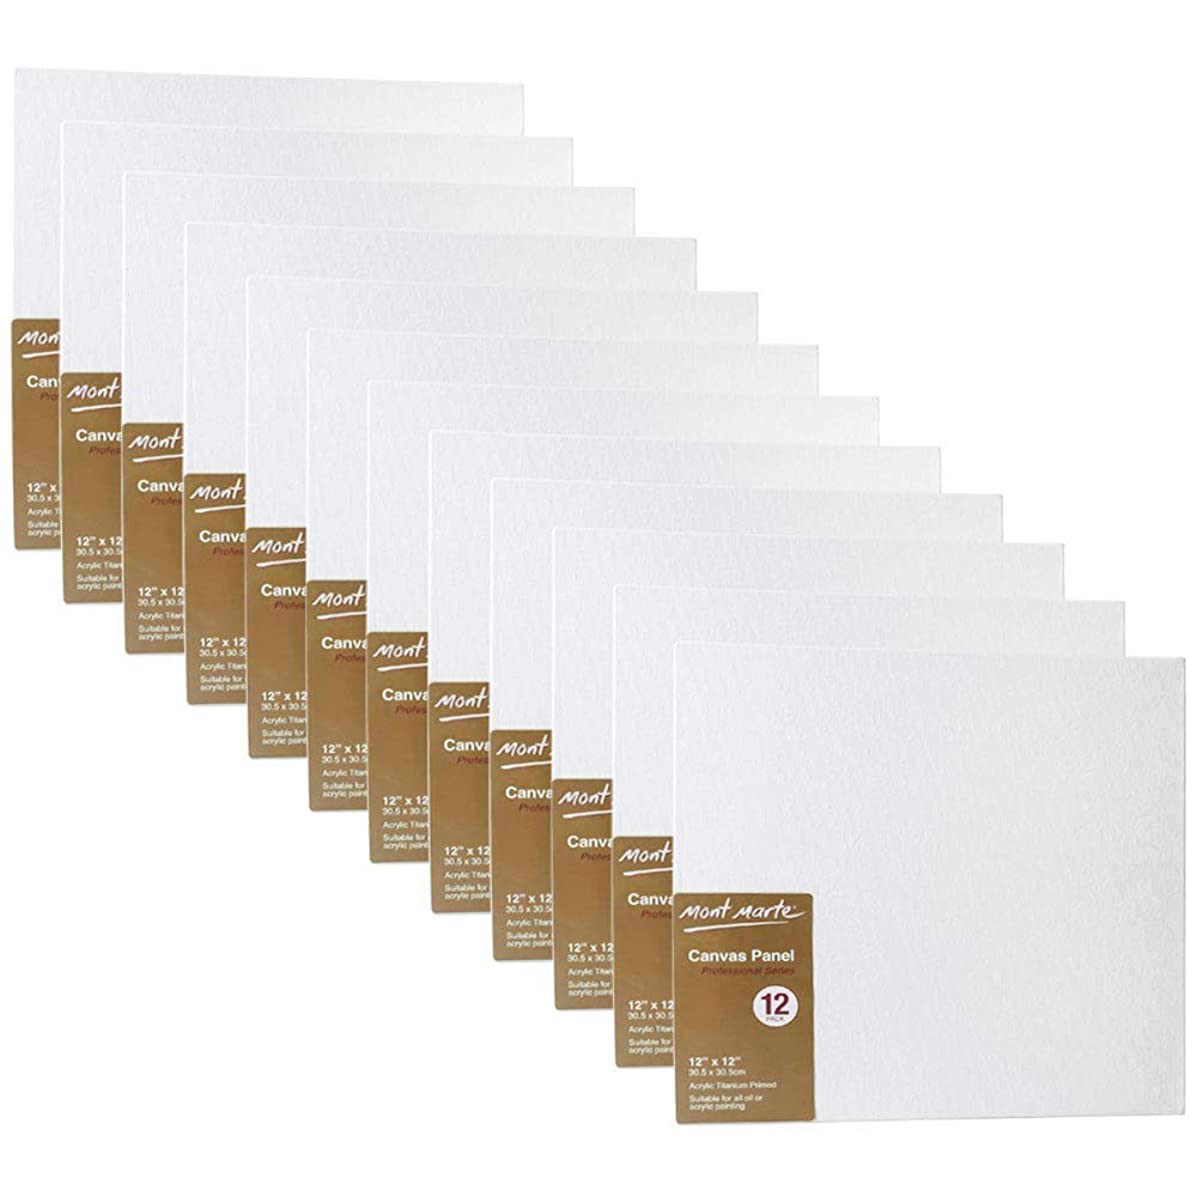 Mont Marte Canvas Panel (Pack of 24), 12 X 12 inches, Canvas Panel Great for Students to Professional Artists